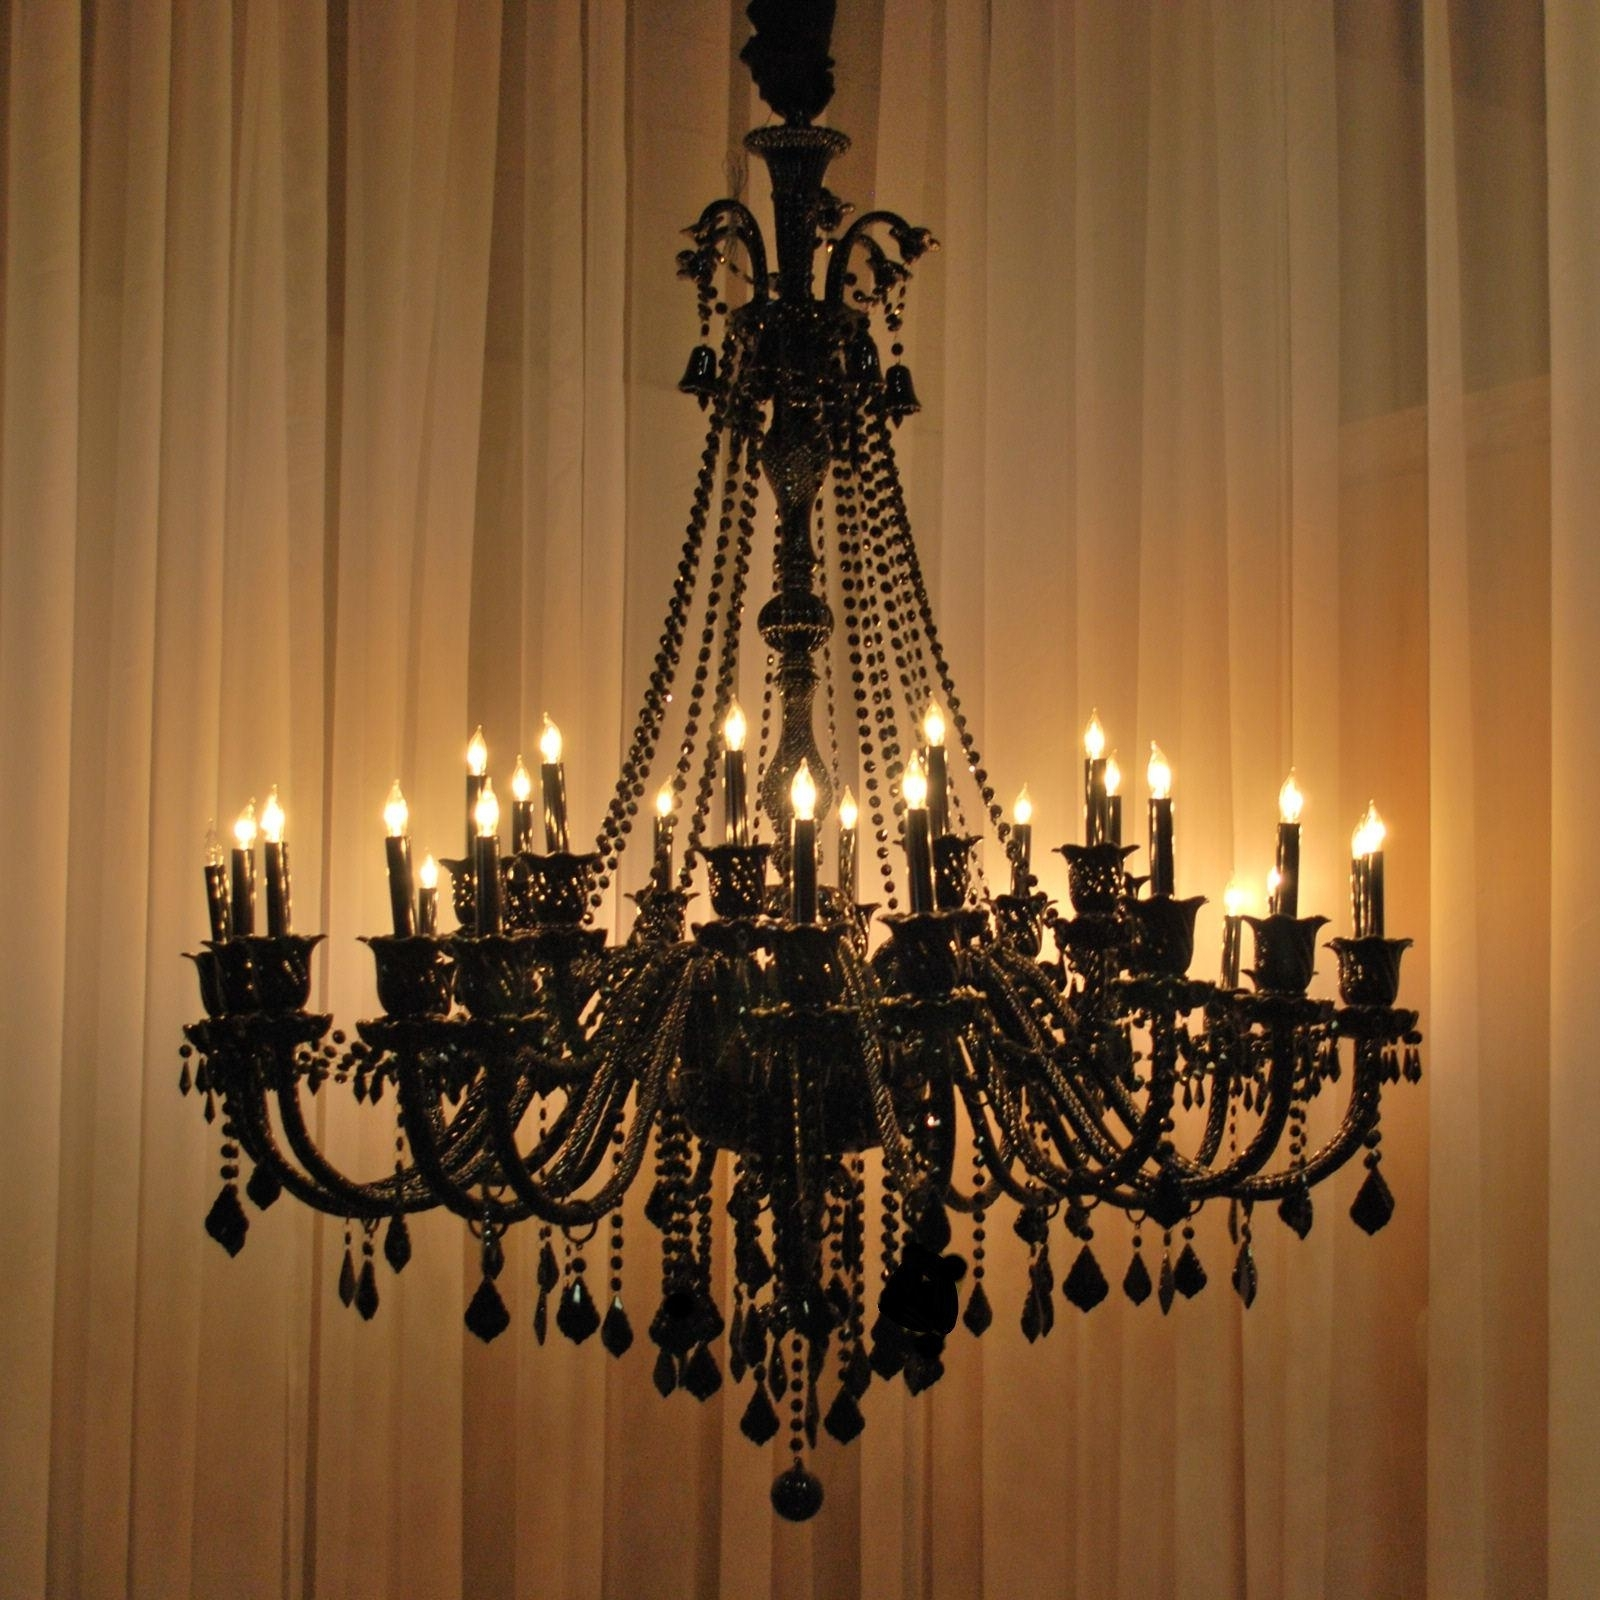 Widely Used Chandelier, Chandeliers, Crystal Chandelier, Crystal Chandeliers In Modern Wrought Iron Chandeliers (View 13 of 20)